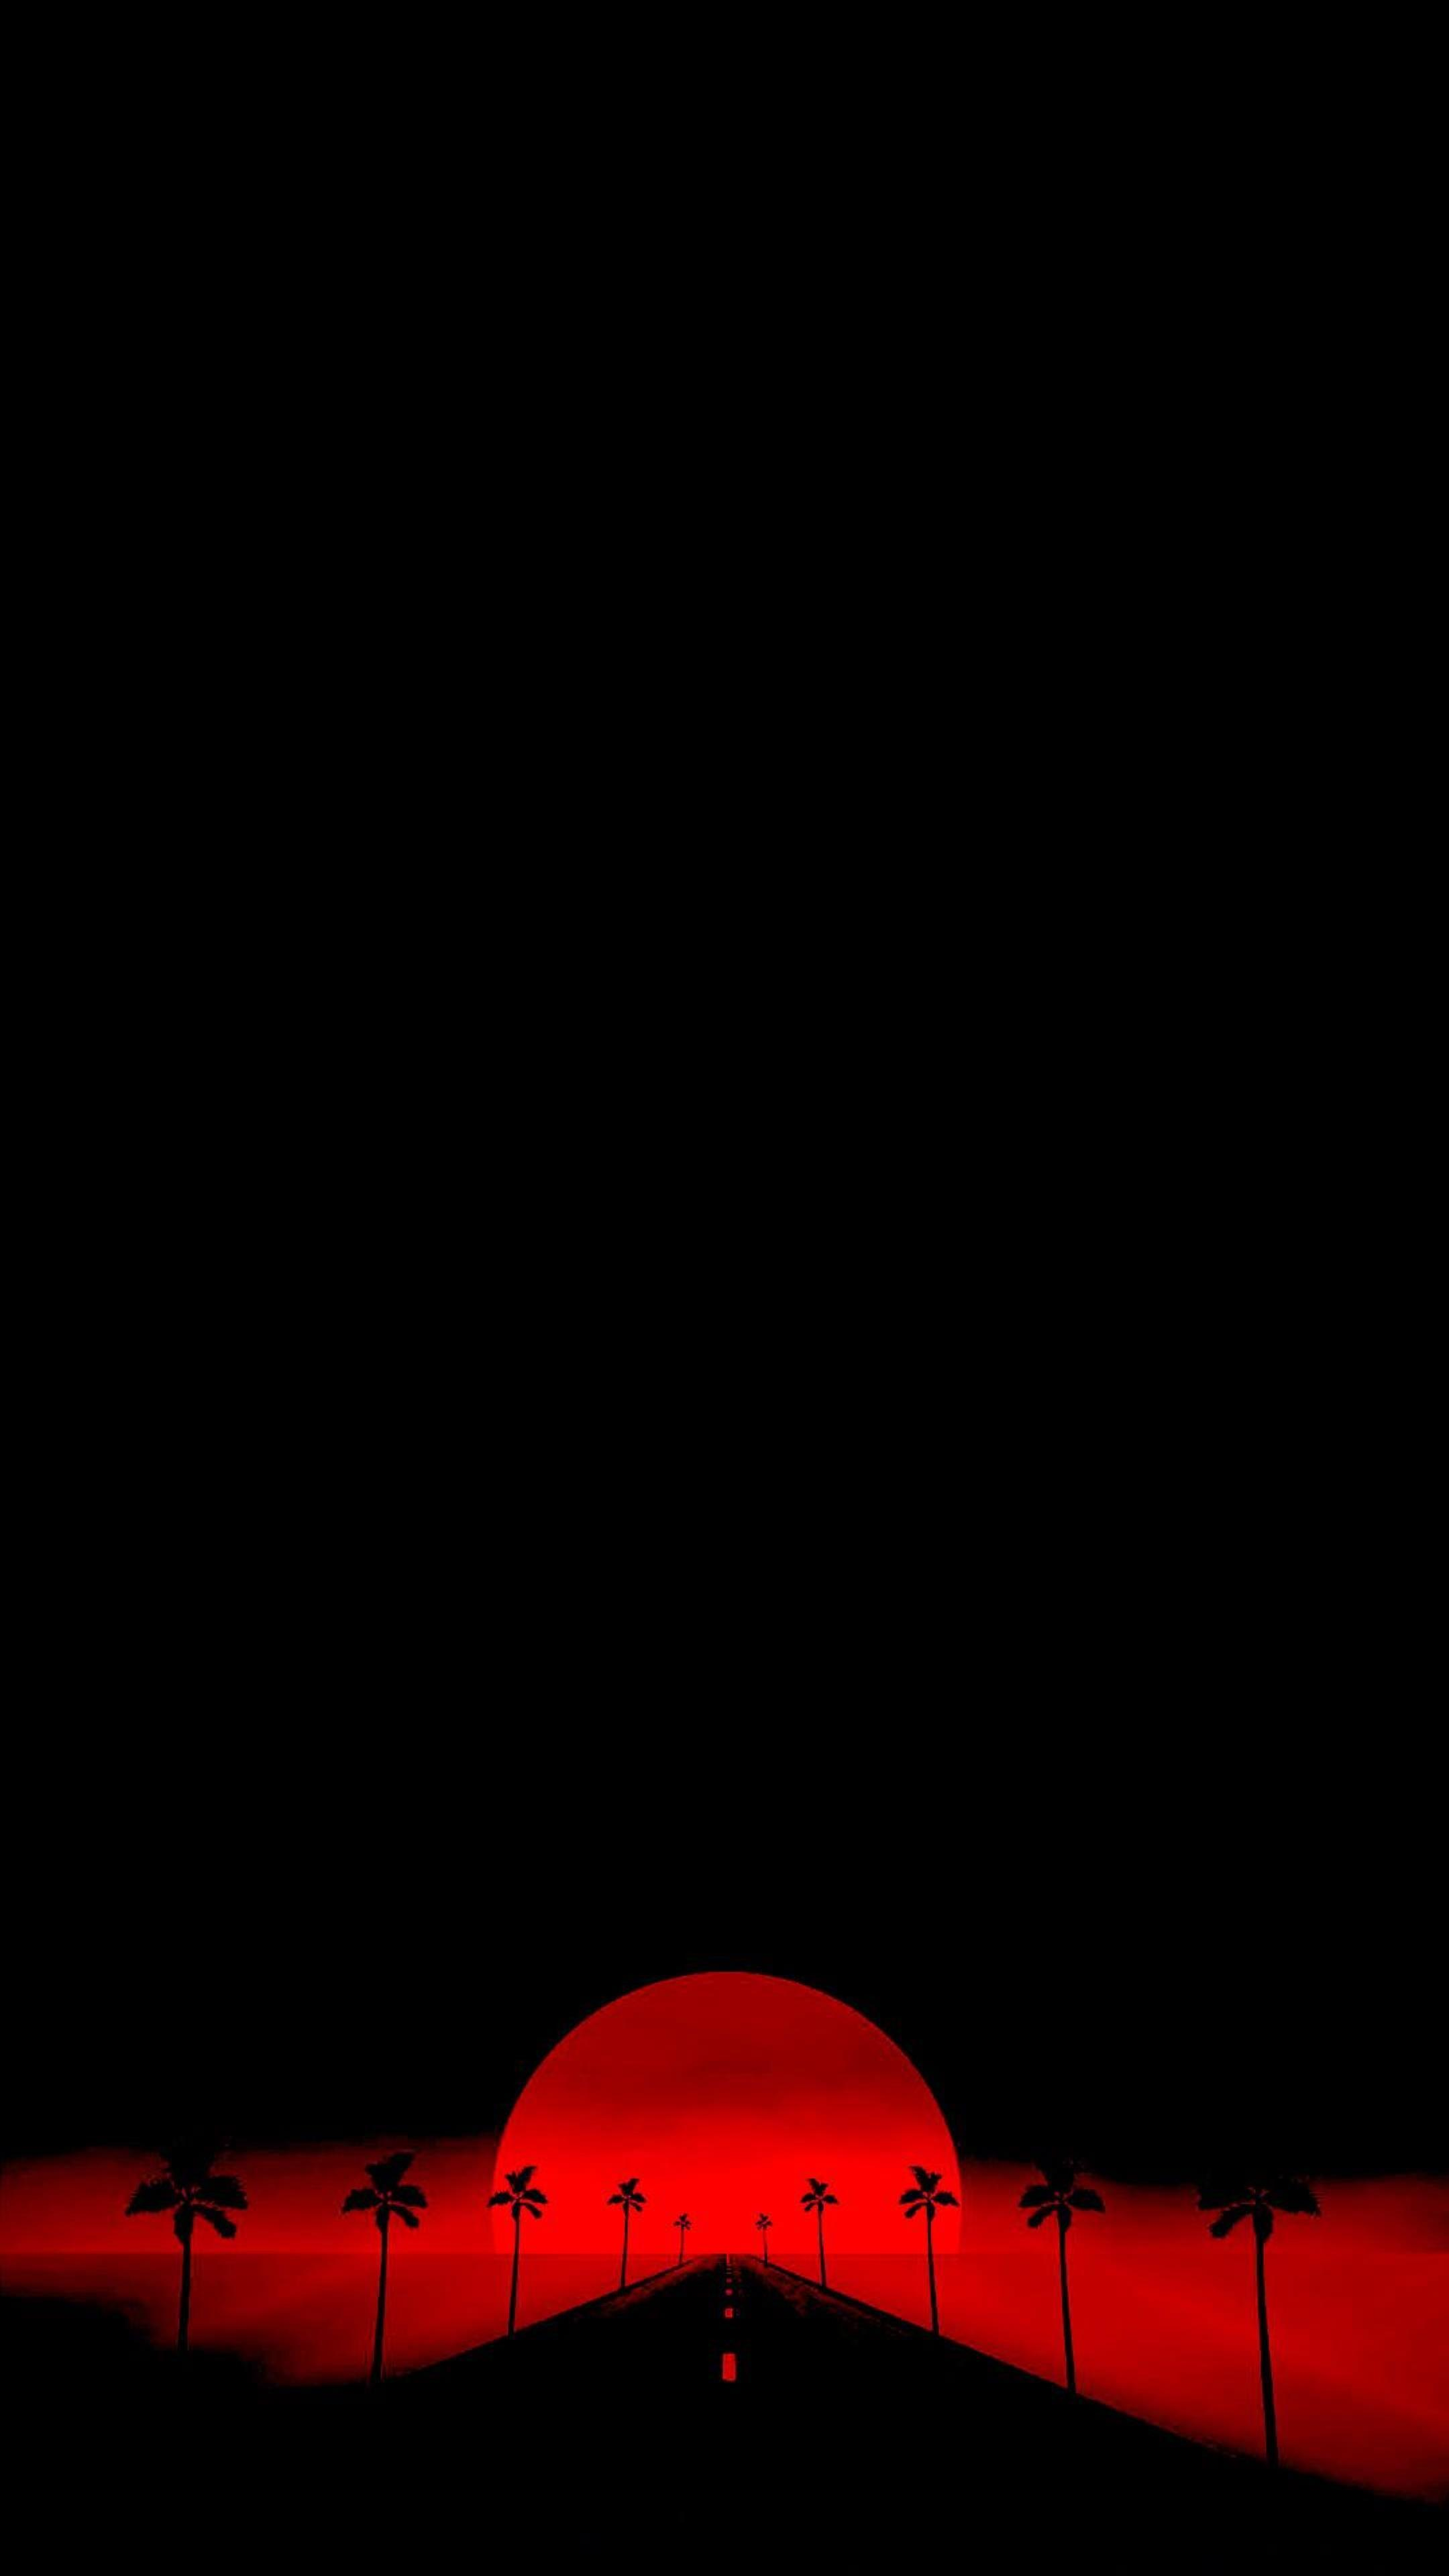 Minimal Amoled Red Wallpapers Wallpaper Cave